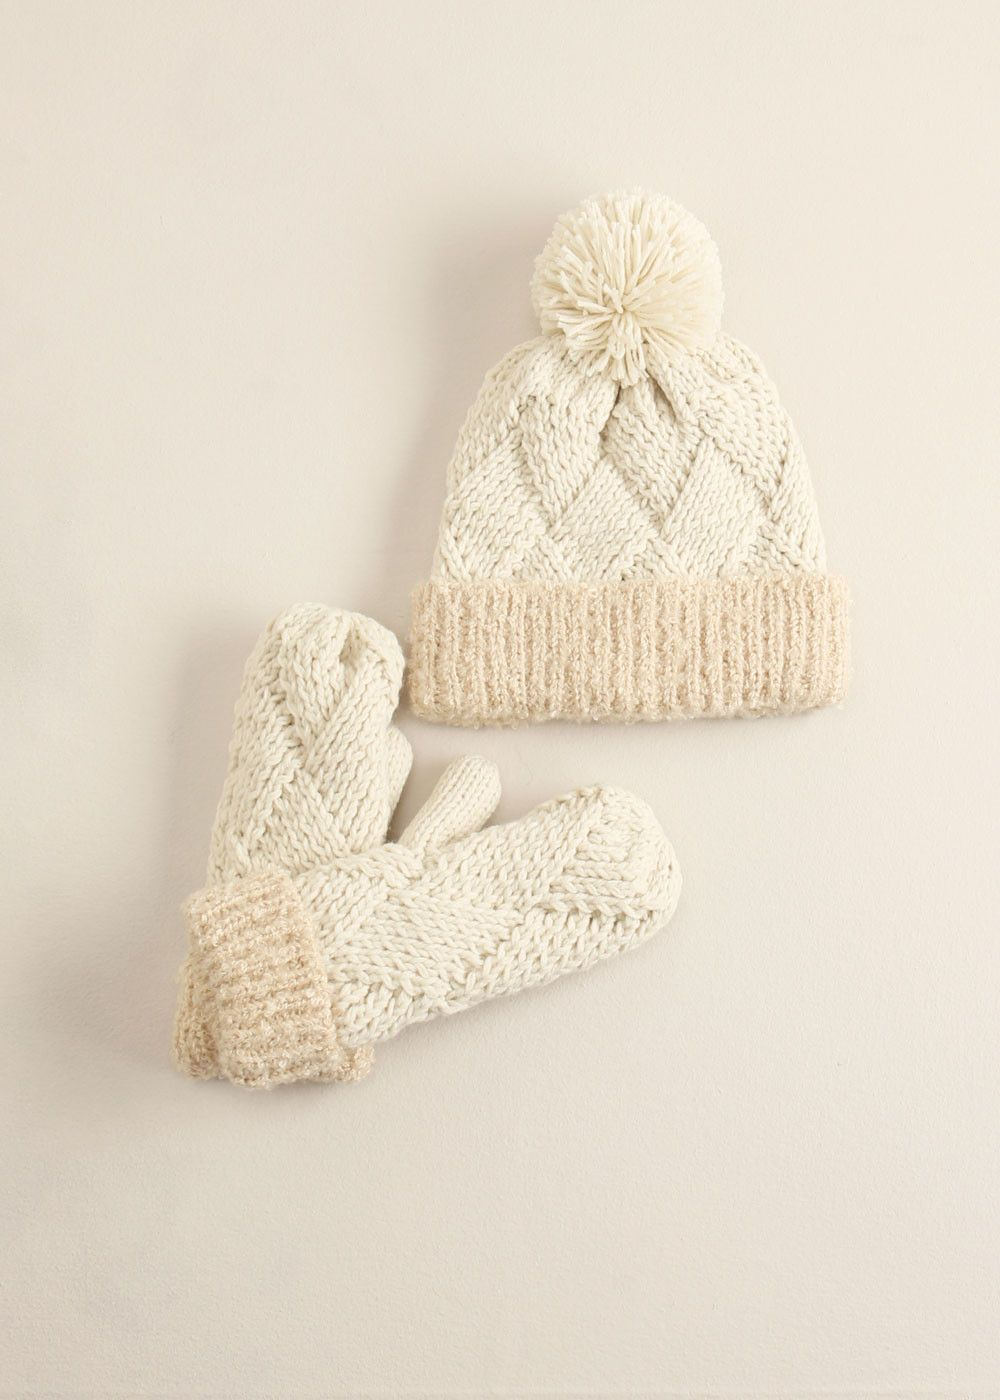 lookbym - Chess Knitted Pompom Hat Ivory setitem theset